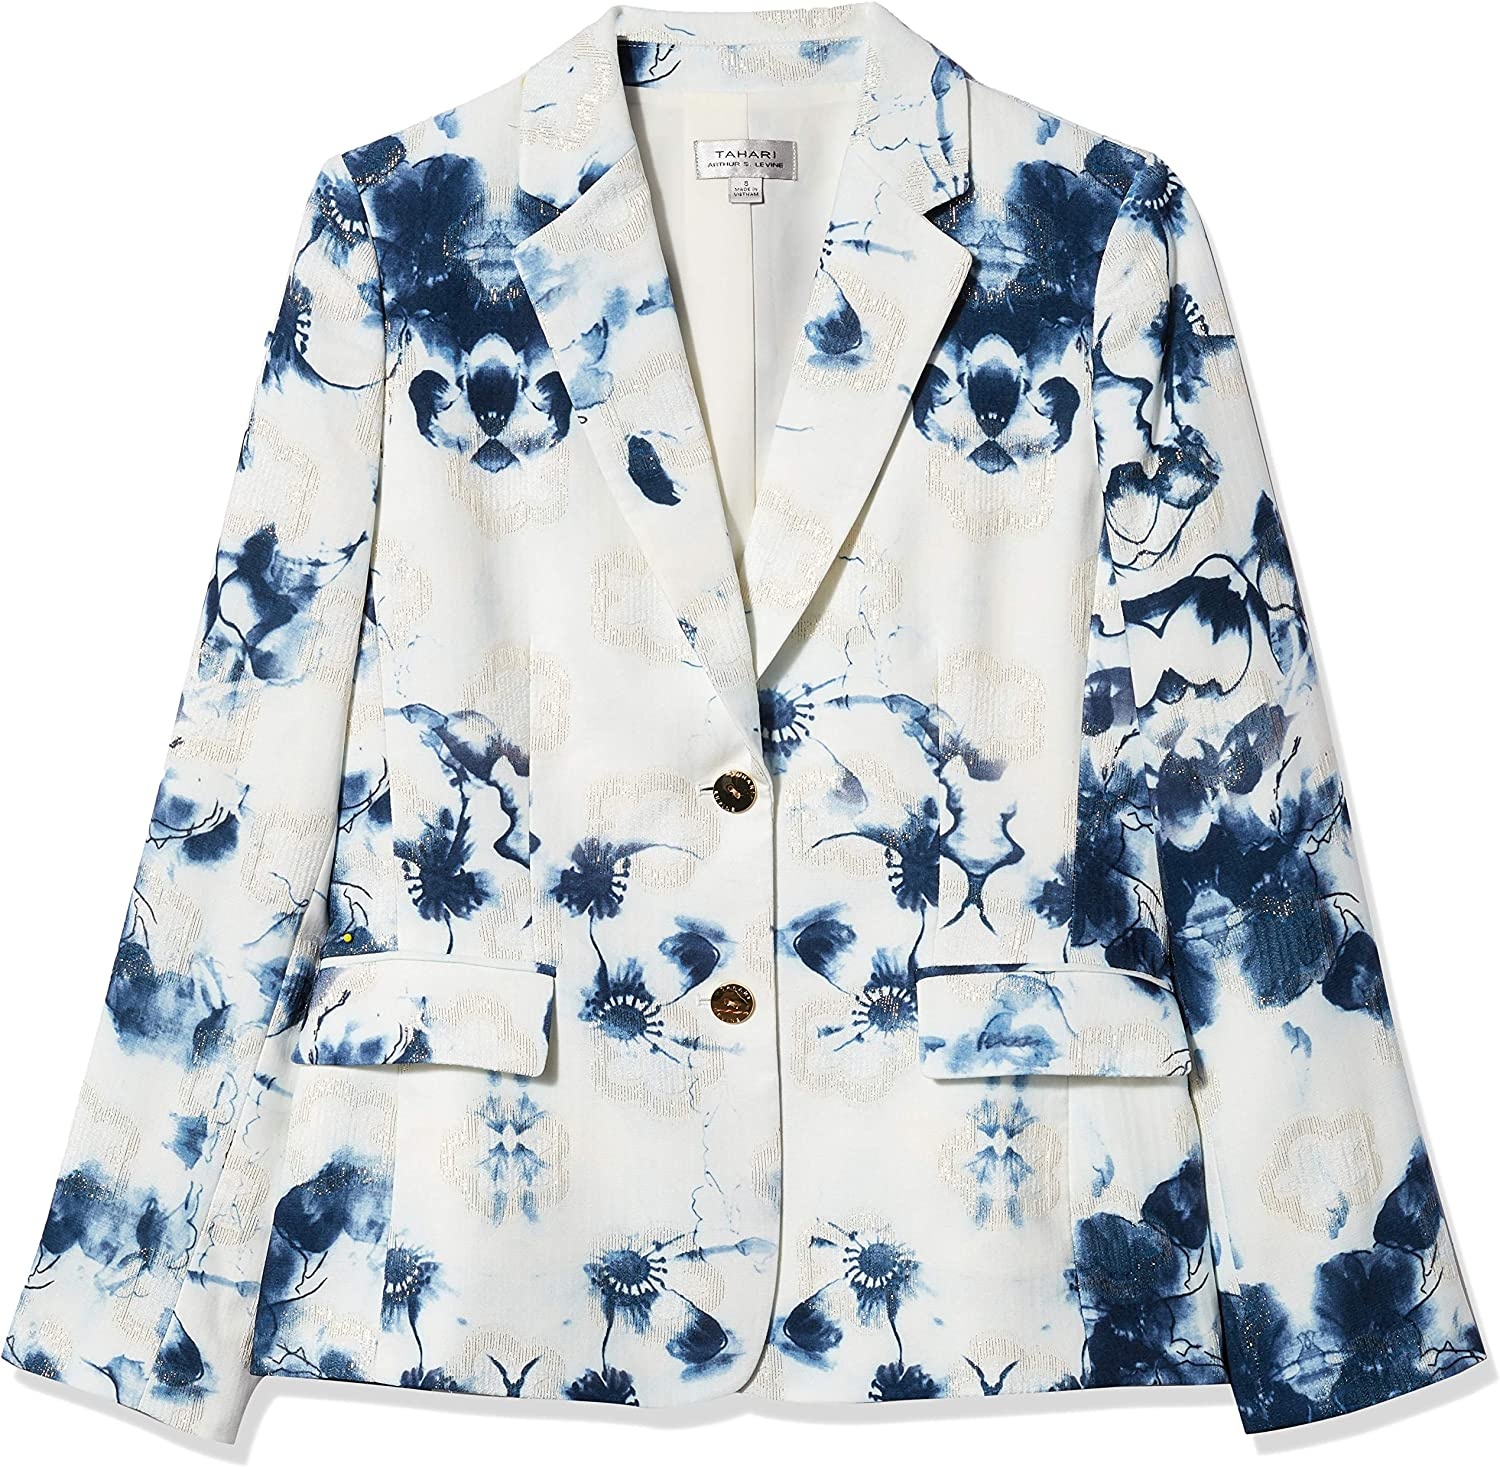 Tahari by ASL Womens Jacket Dress with Fold-Over Collar